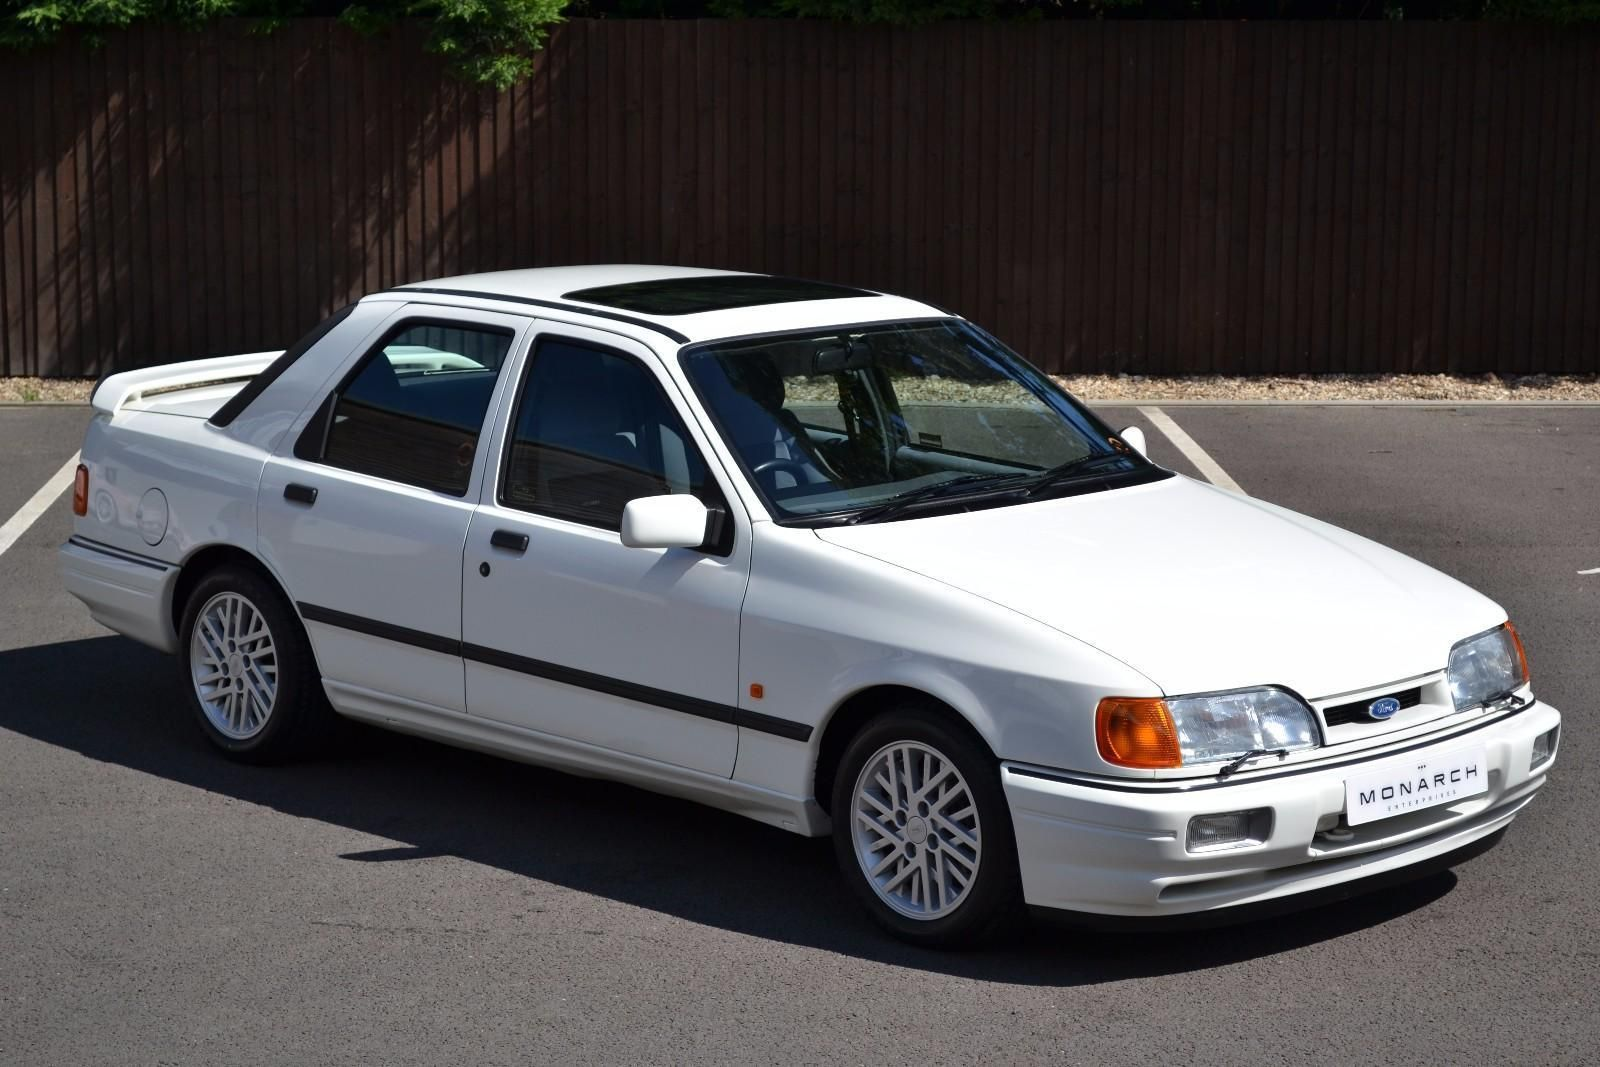 This 1988 Ford Sierra Rs Cosworth Saphire Is On Ebay Ford